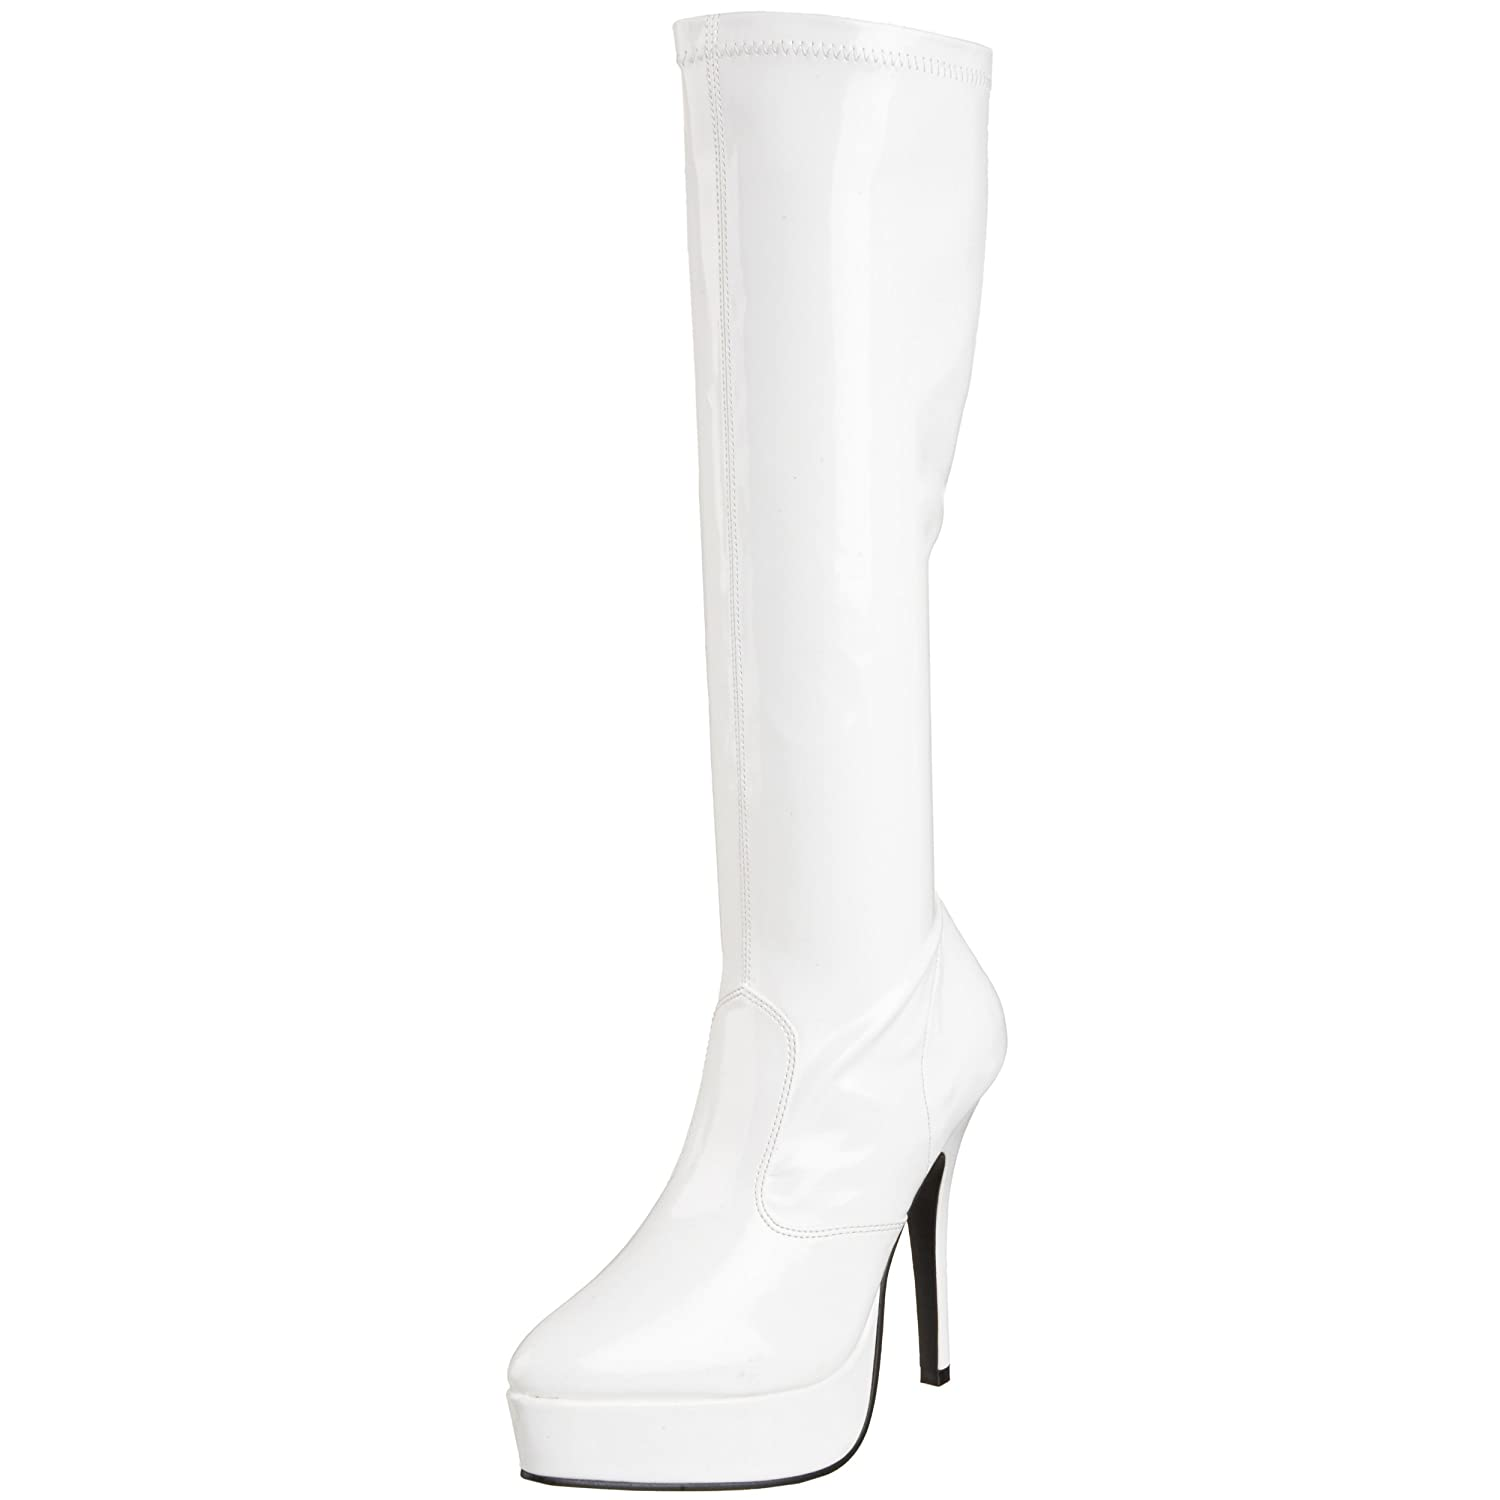 Pleaser Women's Indulge-2000 Platform Boot B000XUUR1O 9 B(M) US|White Stretch Patent